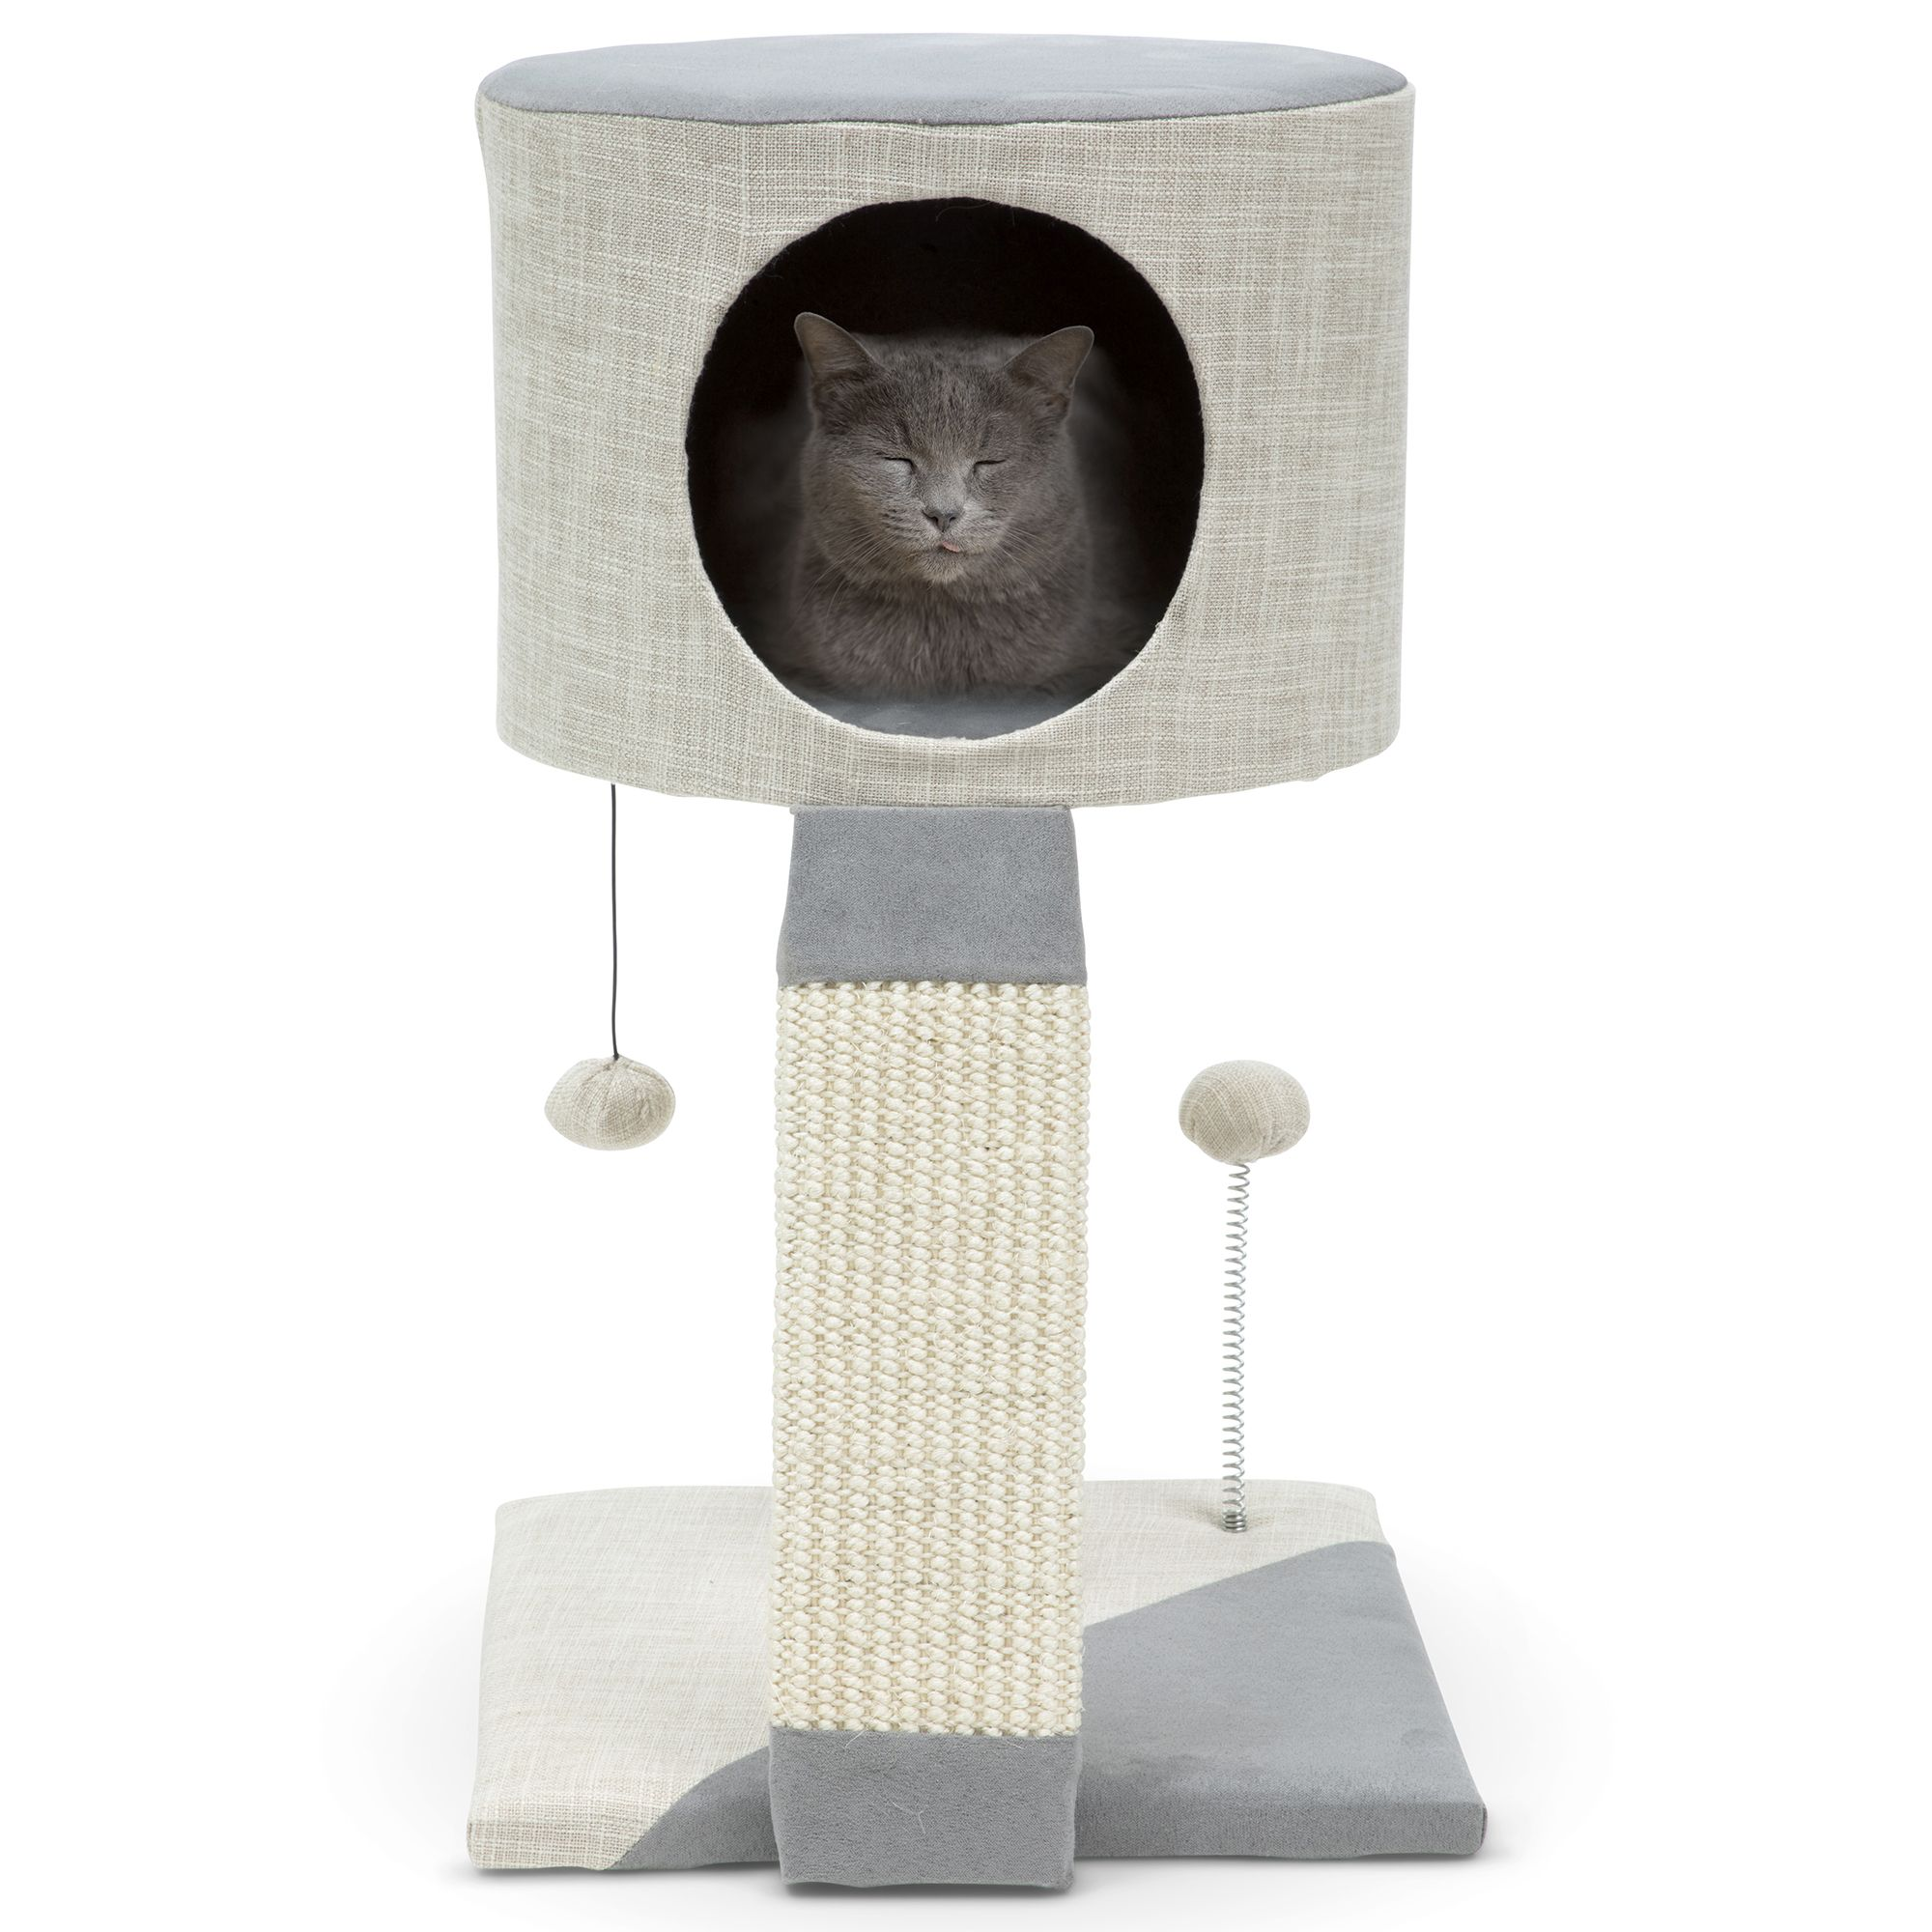 Only For Kittens Or Small Cats Stylish Minimalist Kitten Condo Scratching Post Cat Bed Cat Tree Tower And House With Sisal Scratch Post Mu Funny Cool